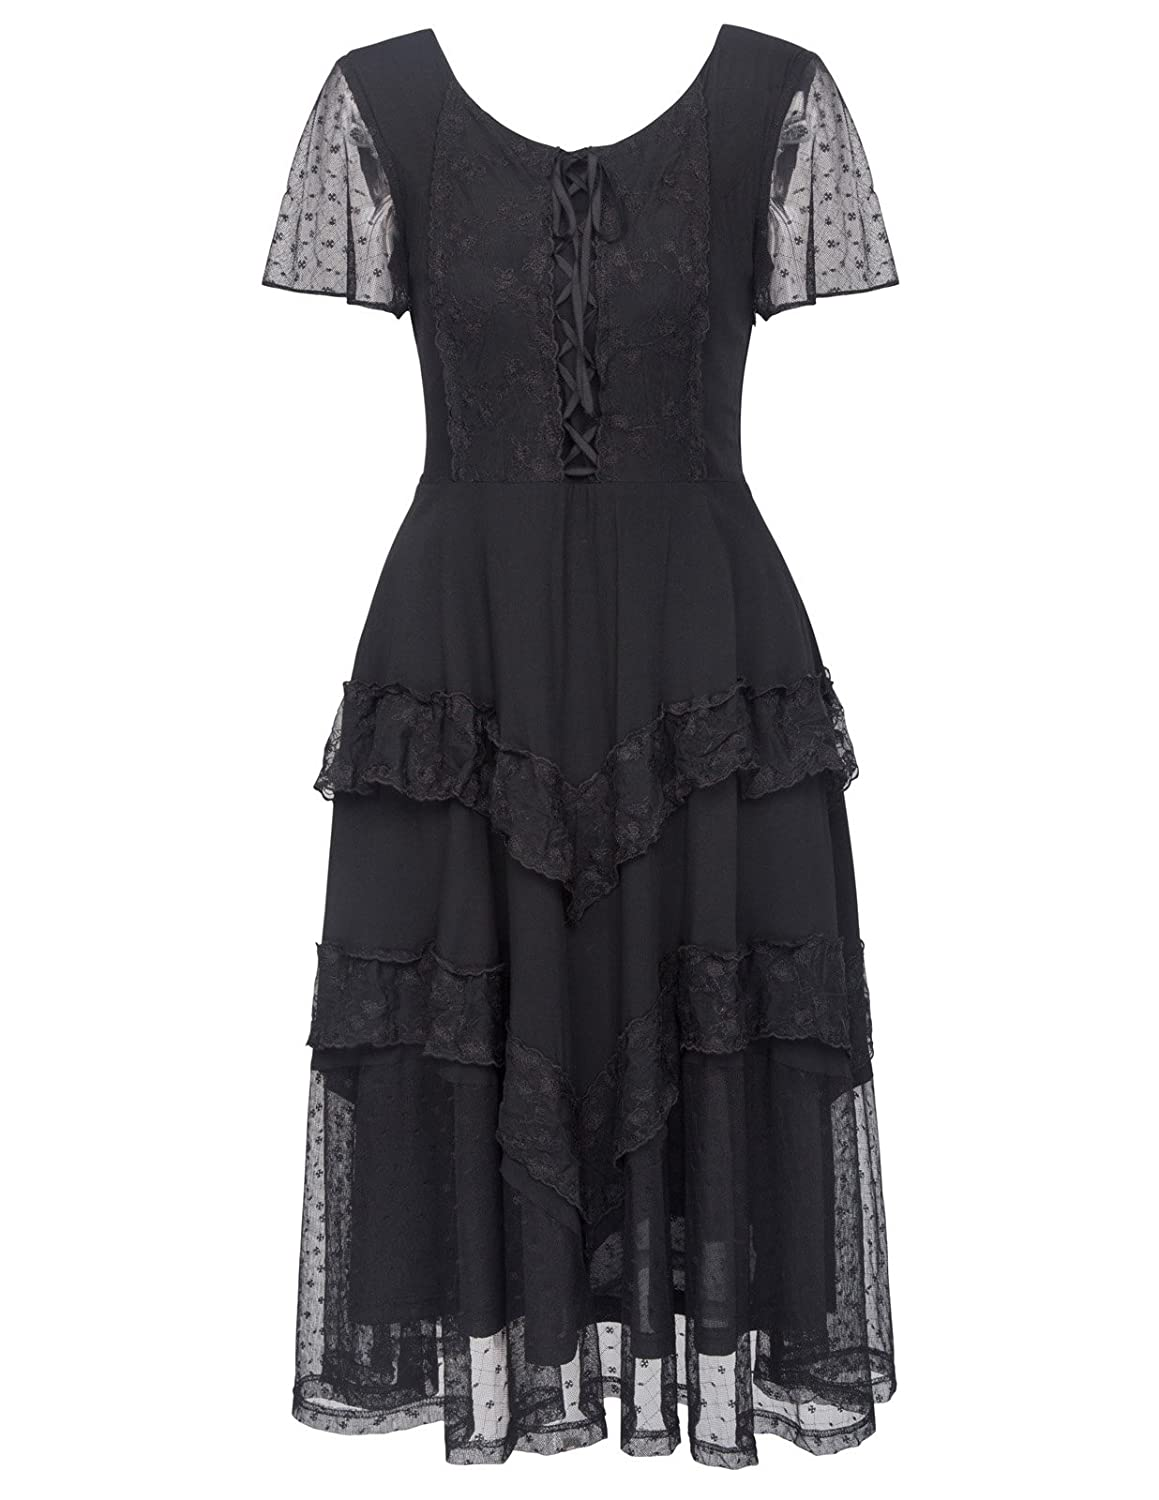 Steampunk Dresses | Women & Girl Costumes Belle Poque Steampunk Victorian Titanic Lace Maxi Dress Tea Party Gown Antique Dress $43.99 AT vintagedancer.com